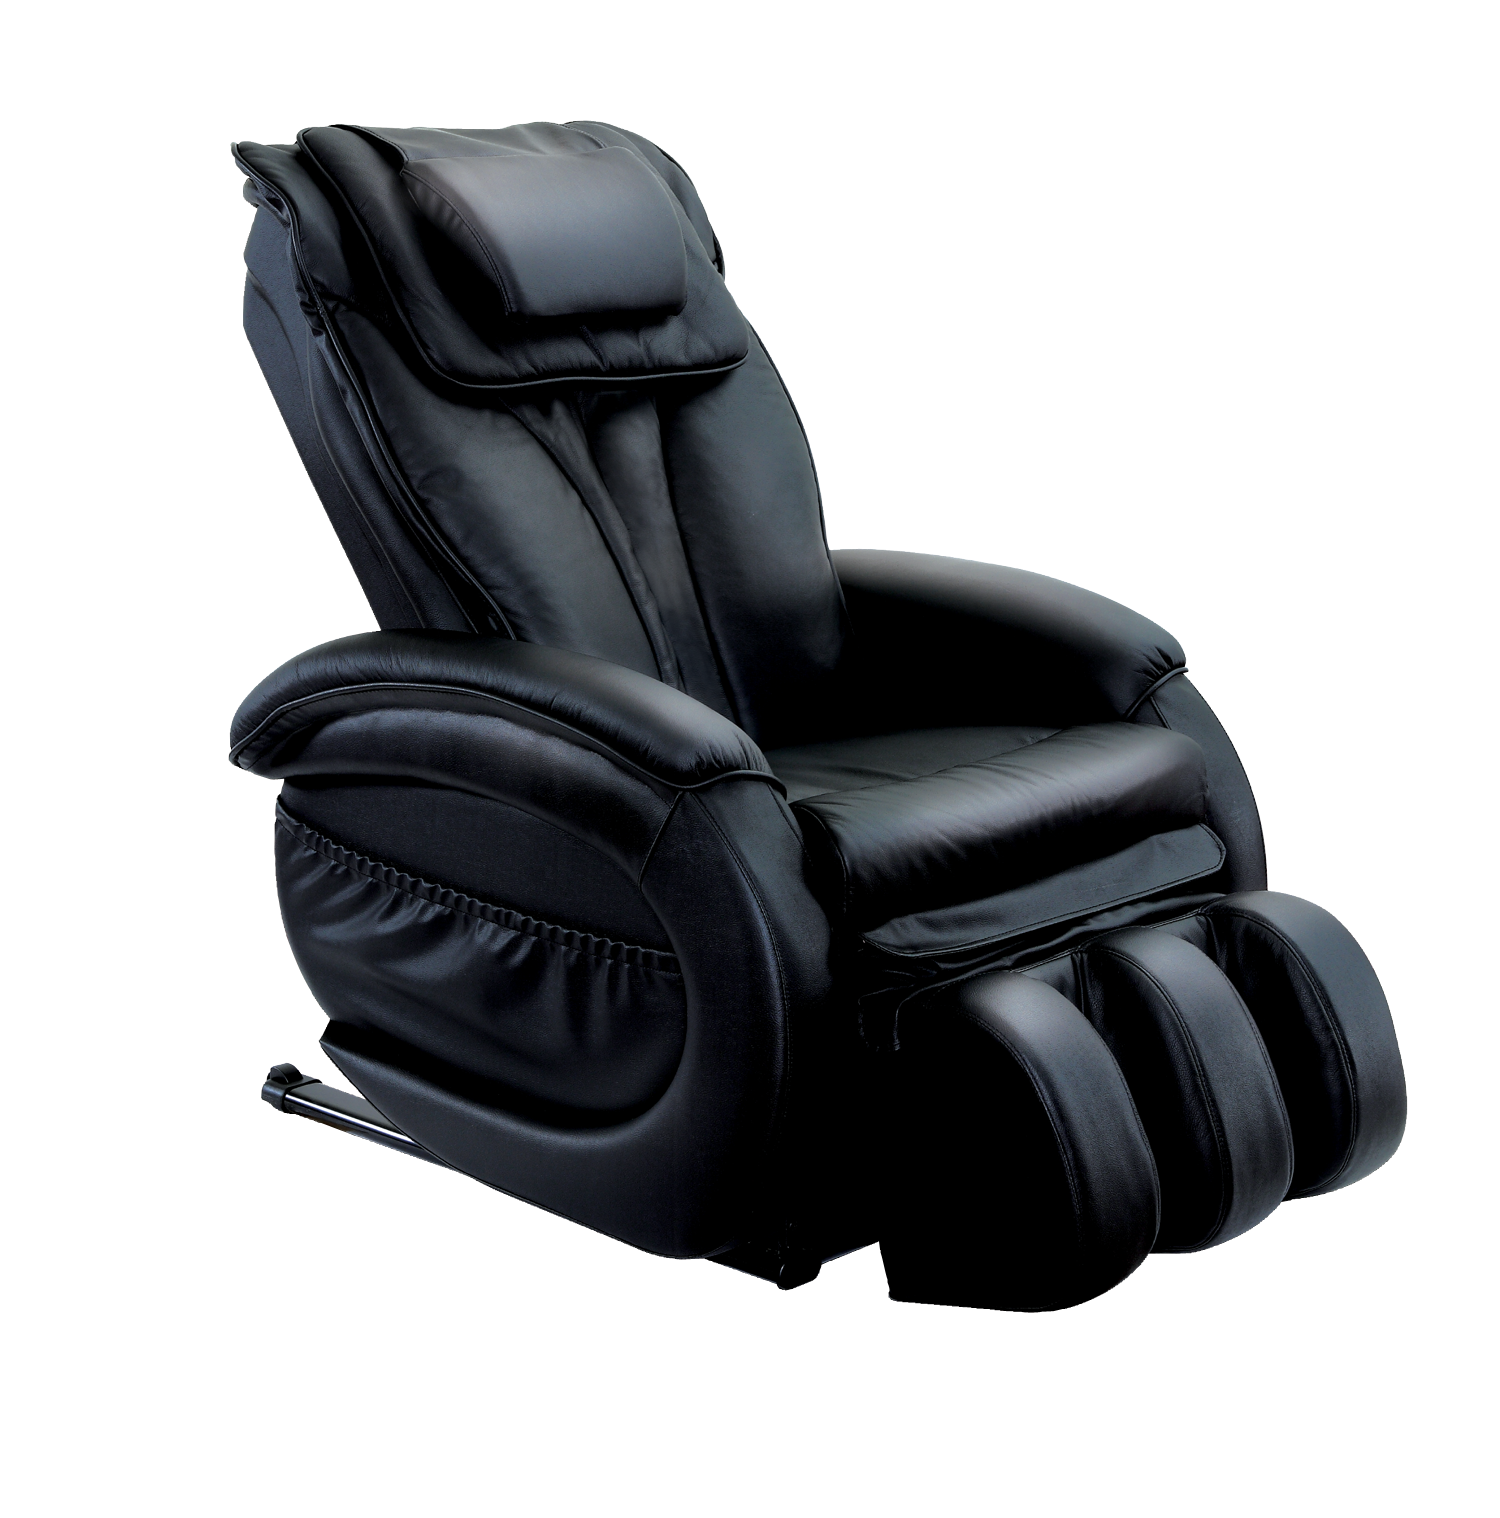 Where Can I Buy Chairs: Can I Find A Massage Chair If I Am Overweight?